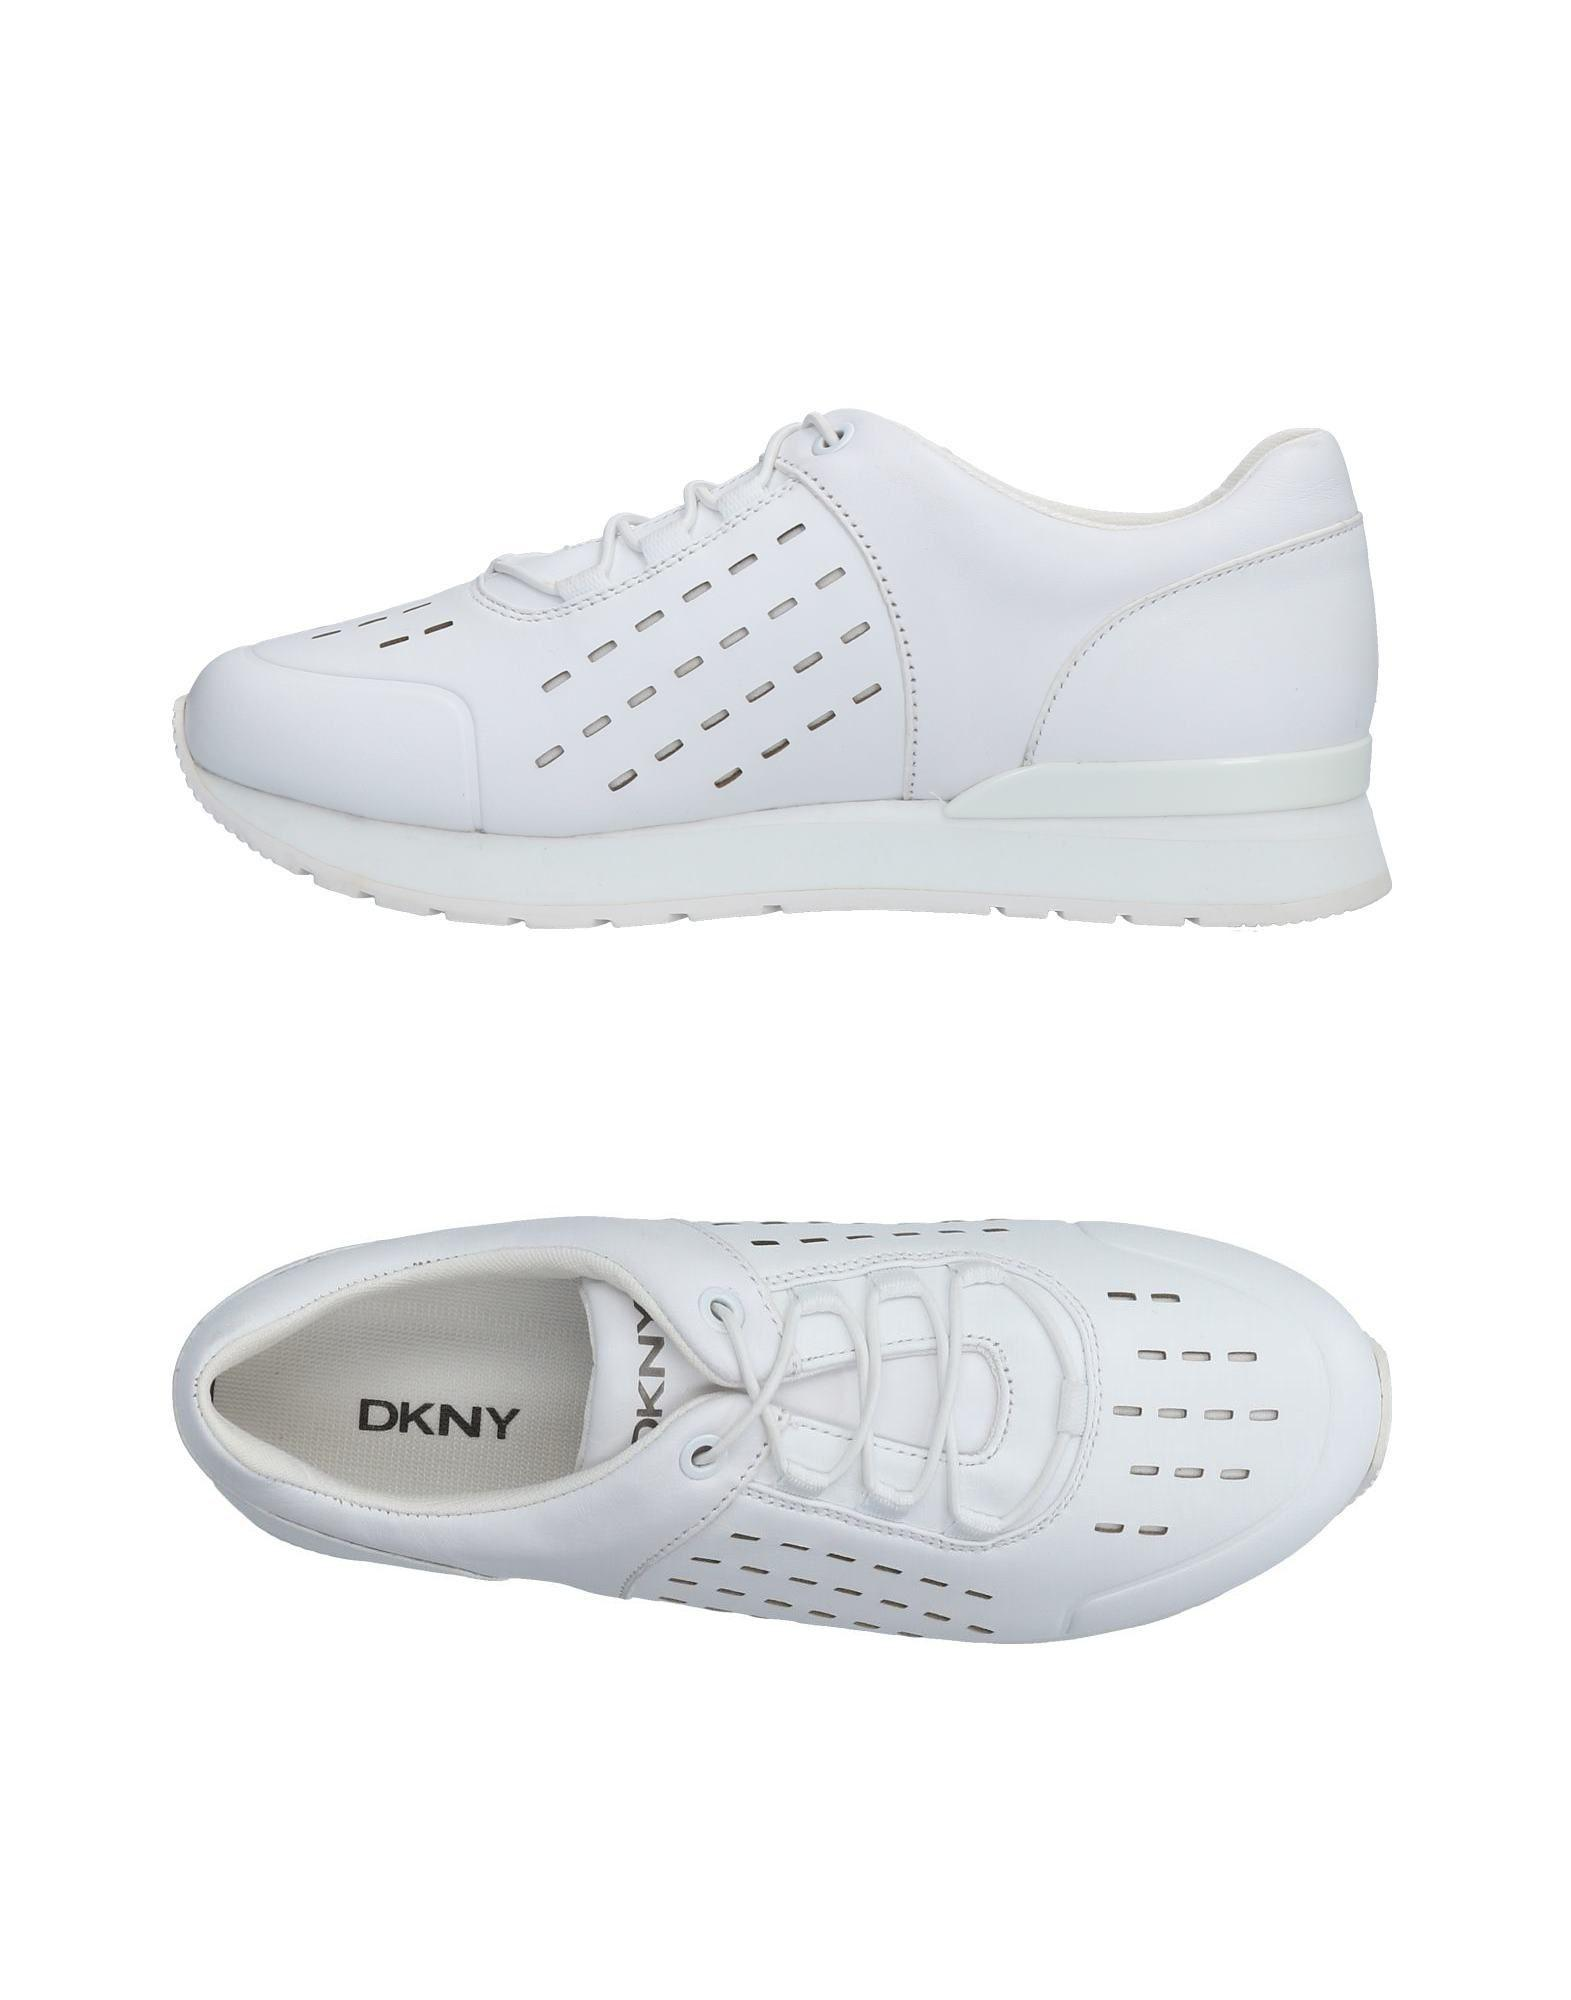 Chaussures - Tribunaux Dkny